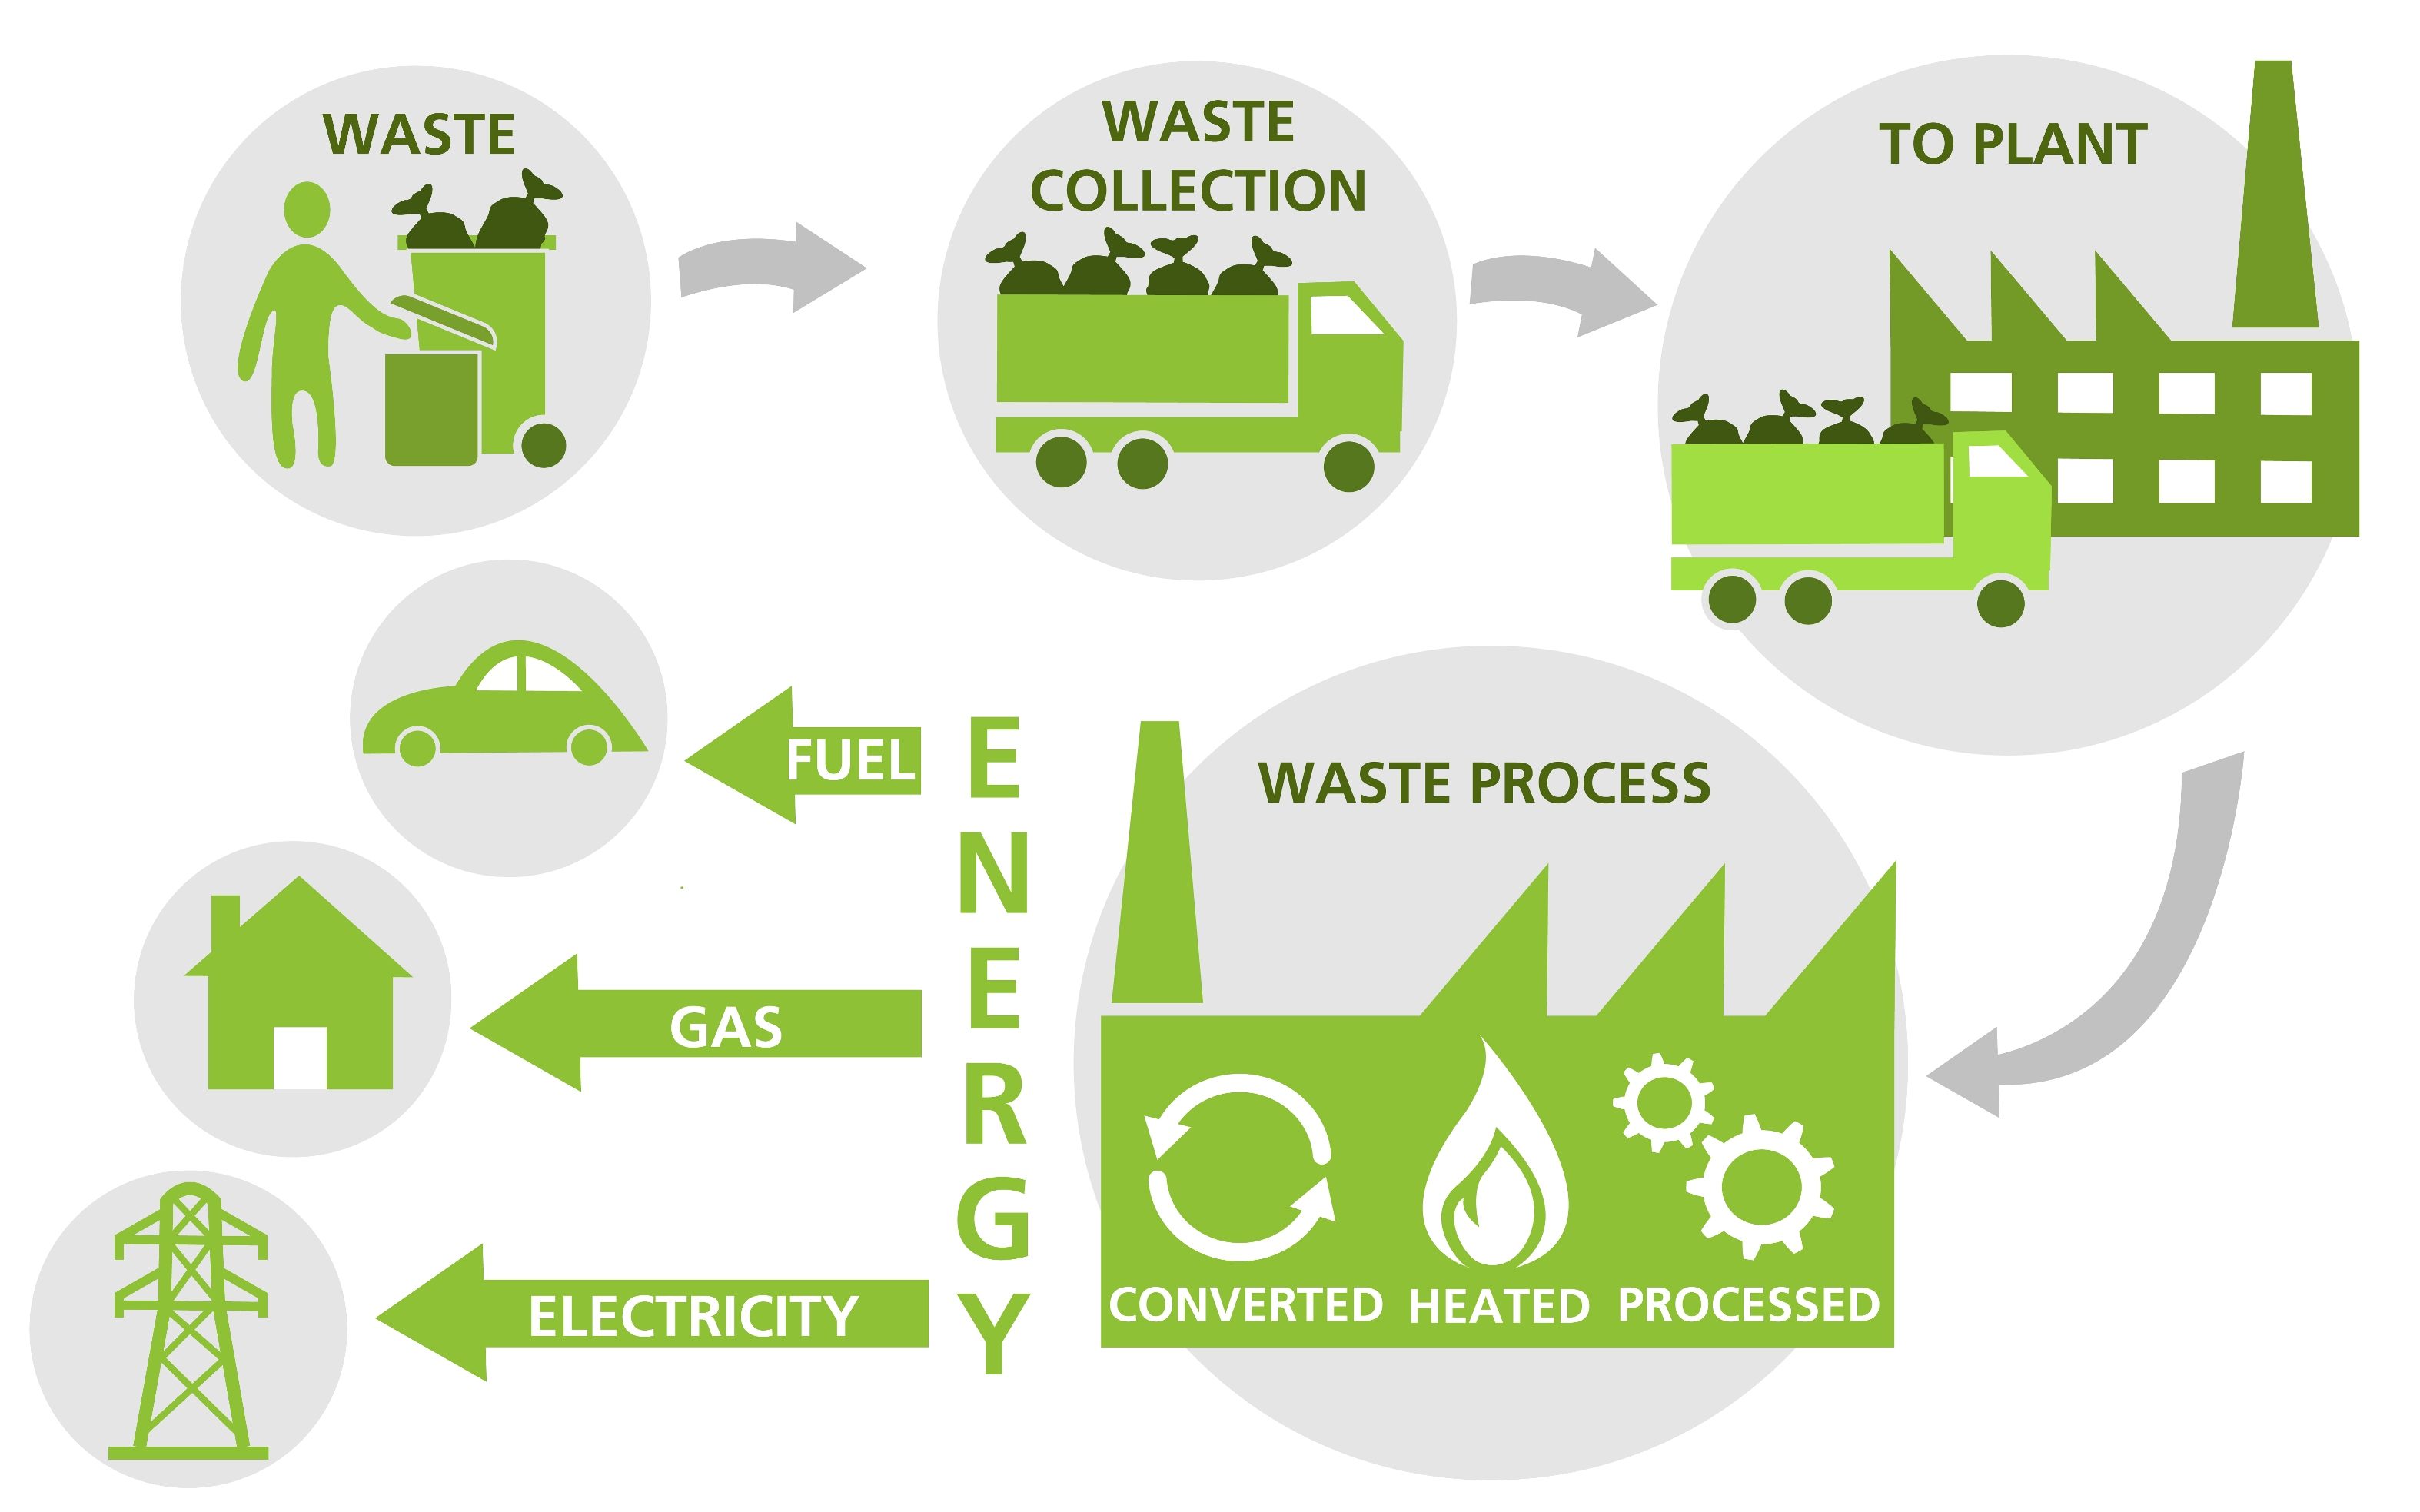 Save The Environment 796891 moreover Nature 4 Elements Circle Logo Sign 427232716 additionally 105796 Free Trash Can Vector moreover Environmental And Civil Planning Law together with Best Ways To Reduce Your Carbon Footprint. on recycling infographic